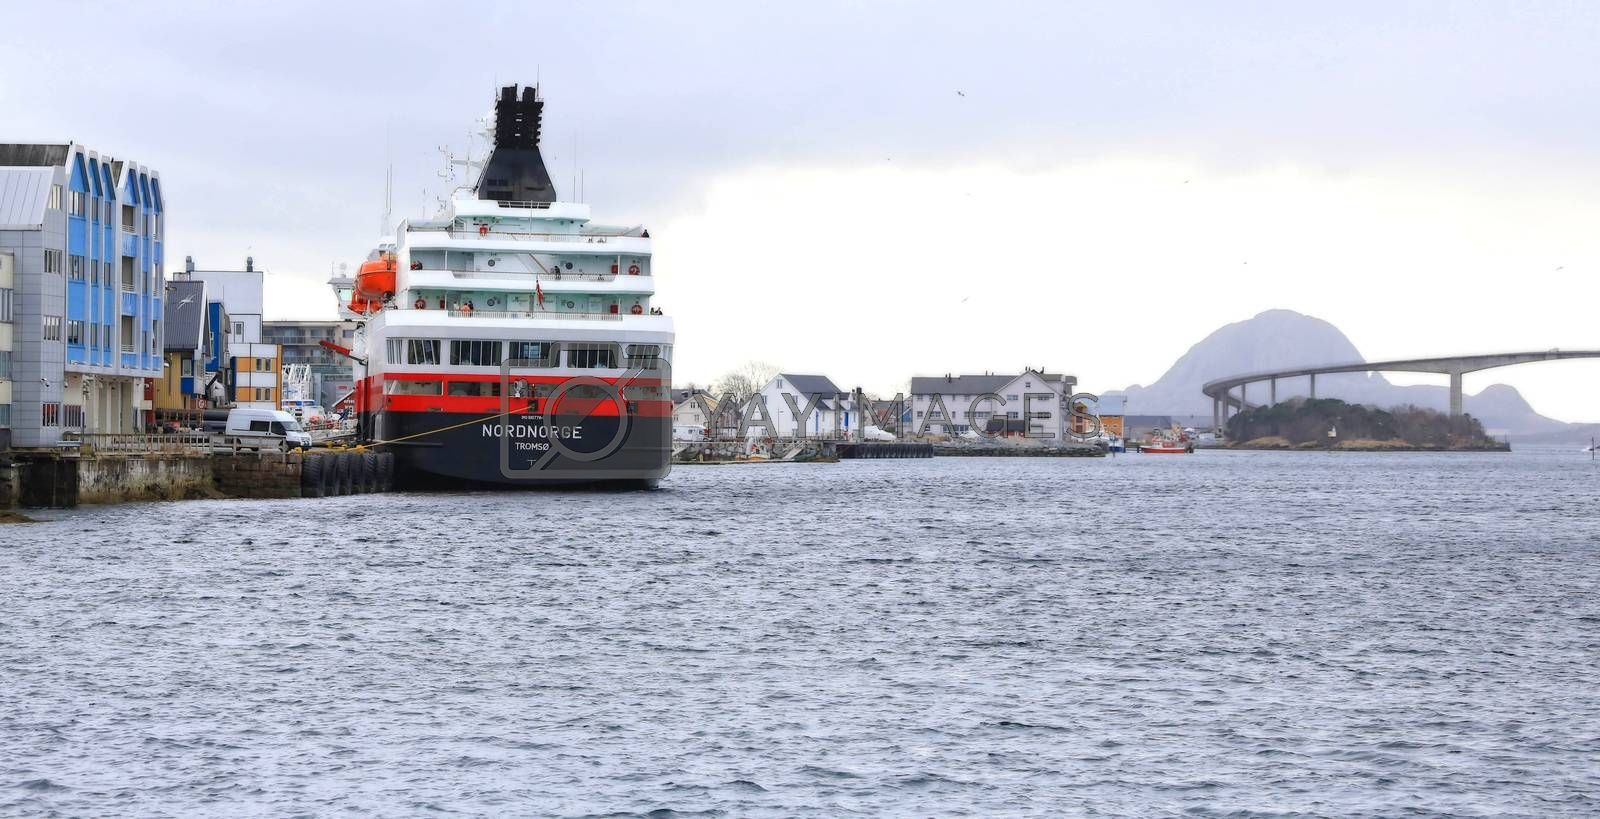 Royalty free image of M.s Nordnorge by post@bronn.no